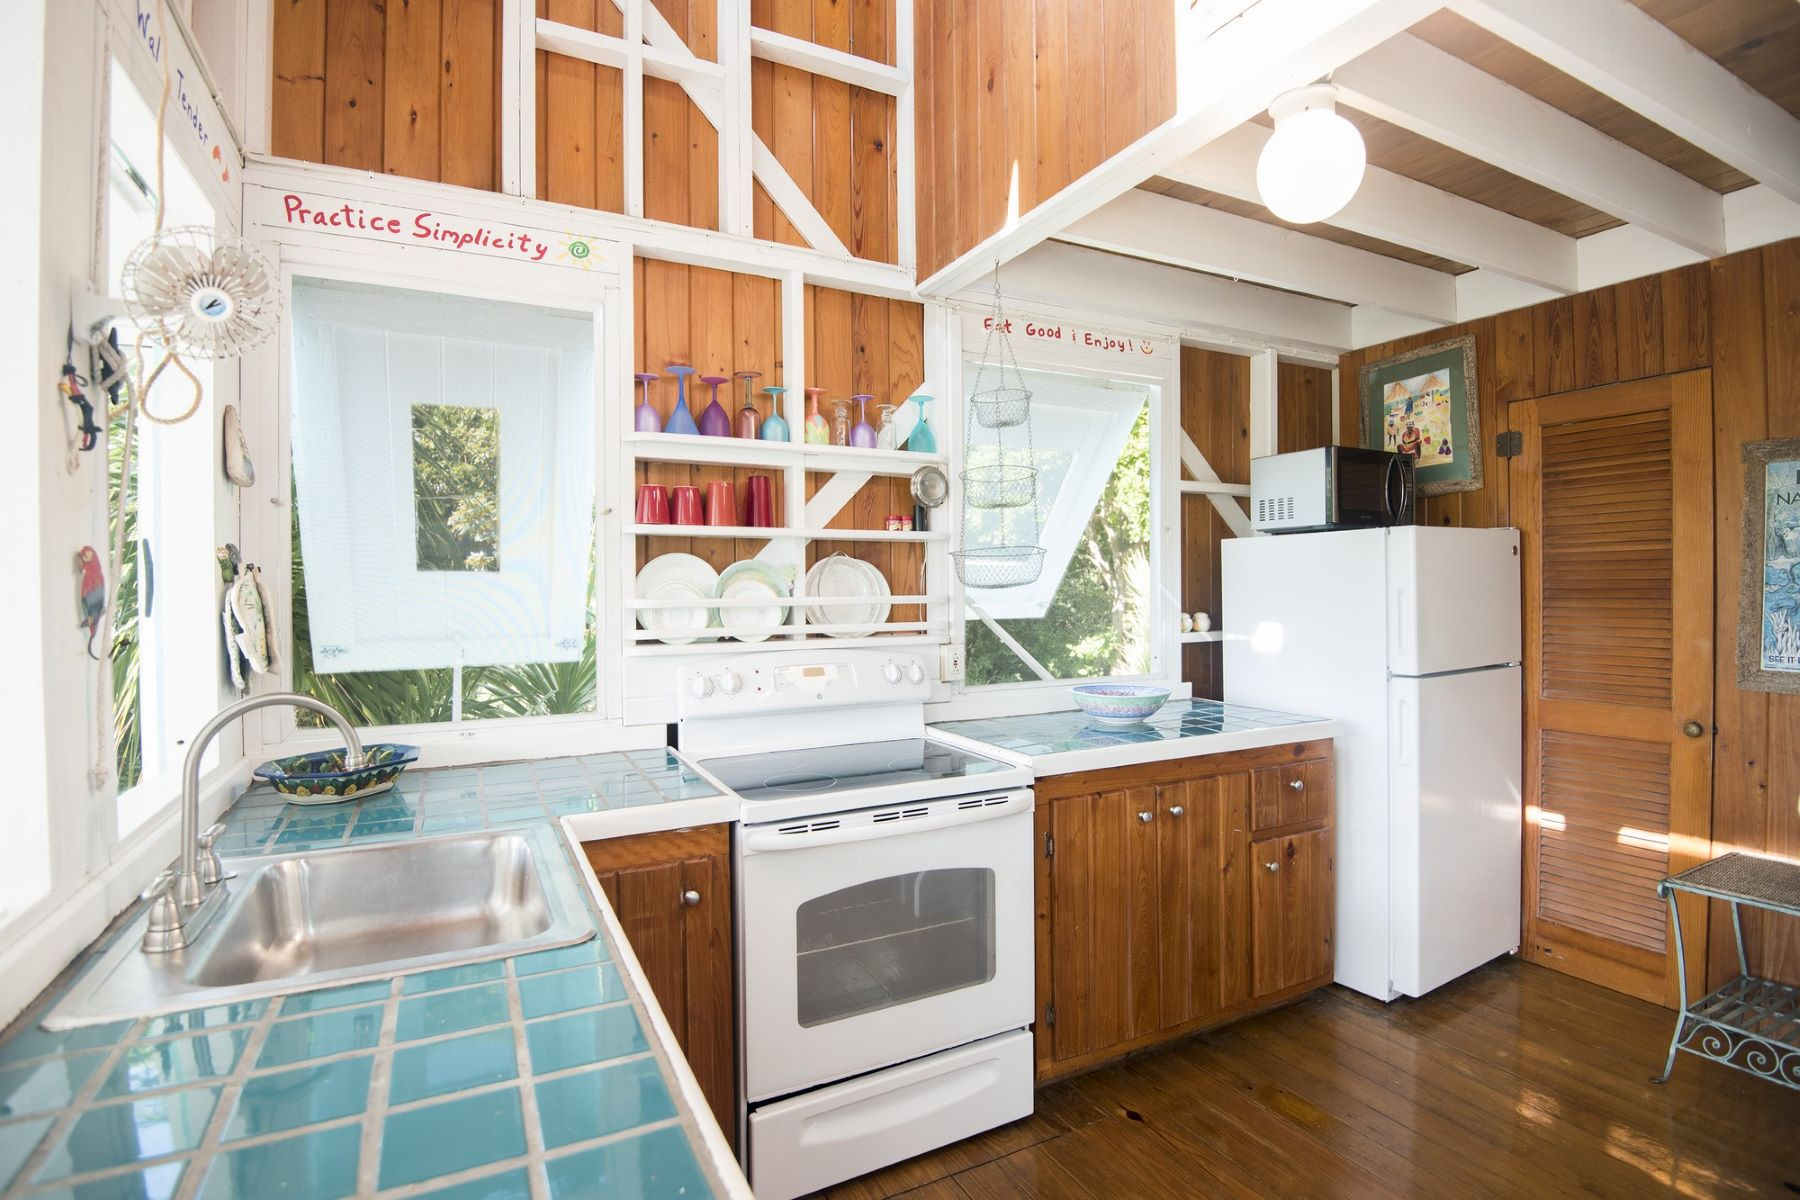 Additional photo for property listing at Coconut Cottage Abaco Ocean Club, Lubbers Quarters, Abaco Bahamas